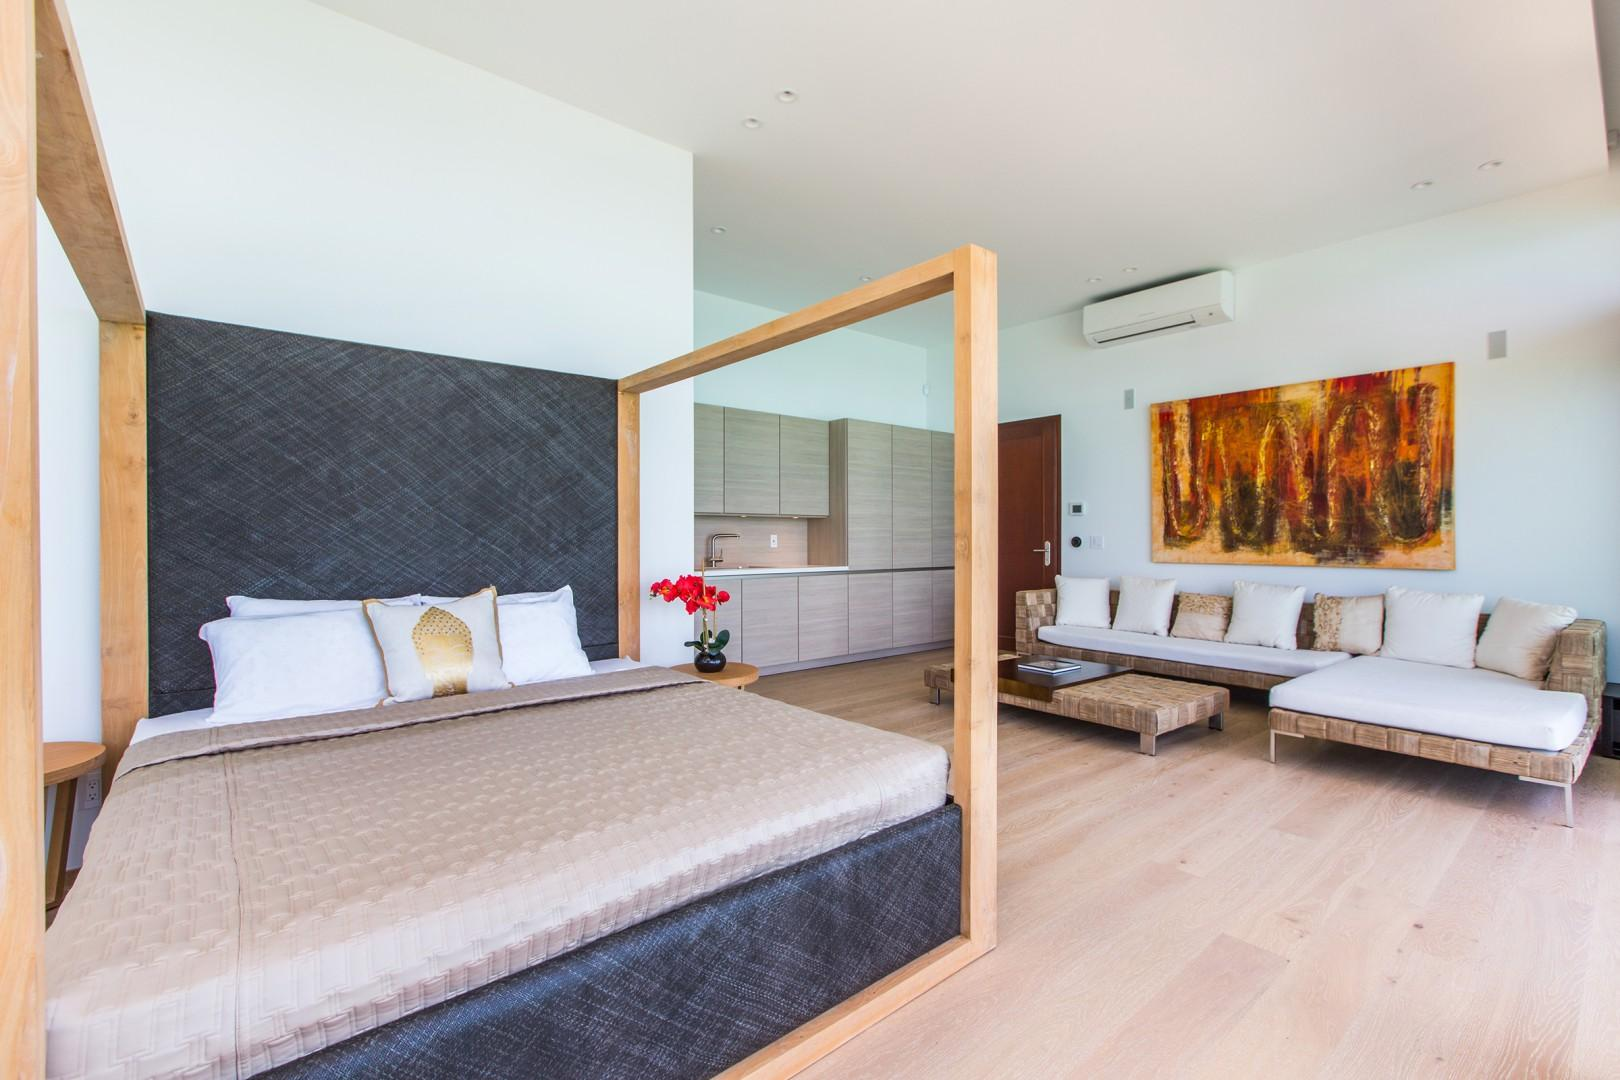 Downstairs separate guest bedroom 5 with pool and ocean views